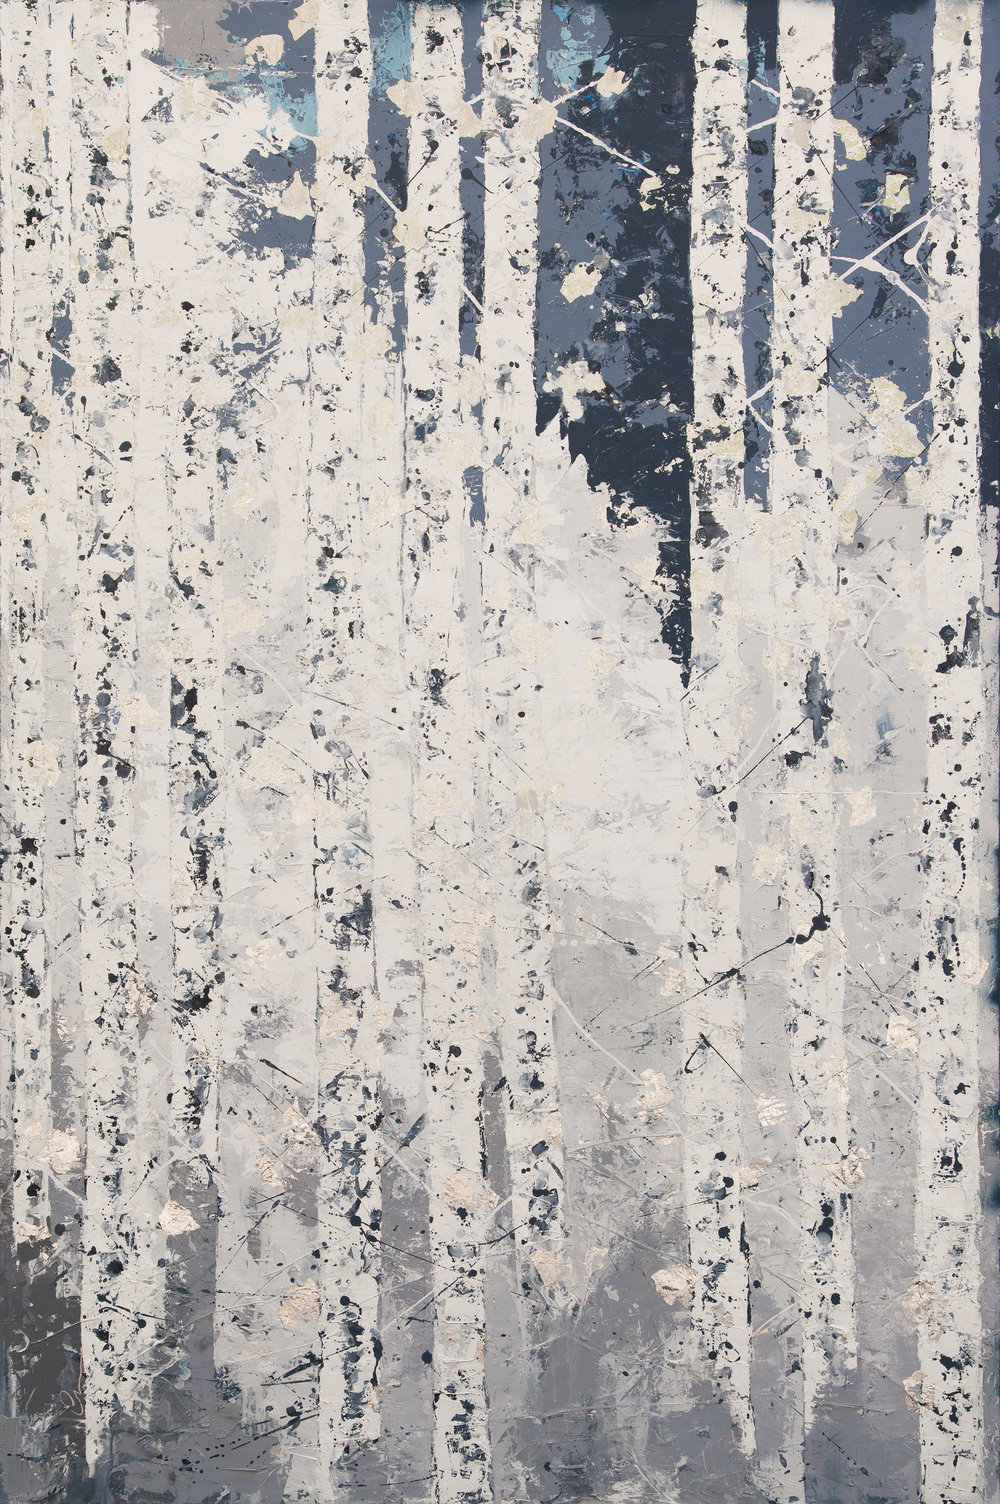 Winter Stillness  Canvas, oil & silver leaf 130x195cm   AVAILABLE FOR PRIVATE VIEW